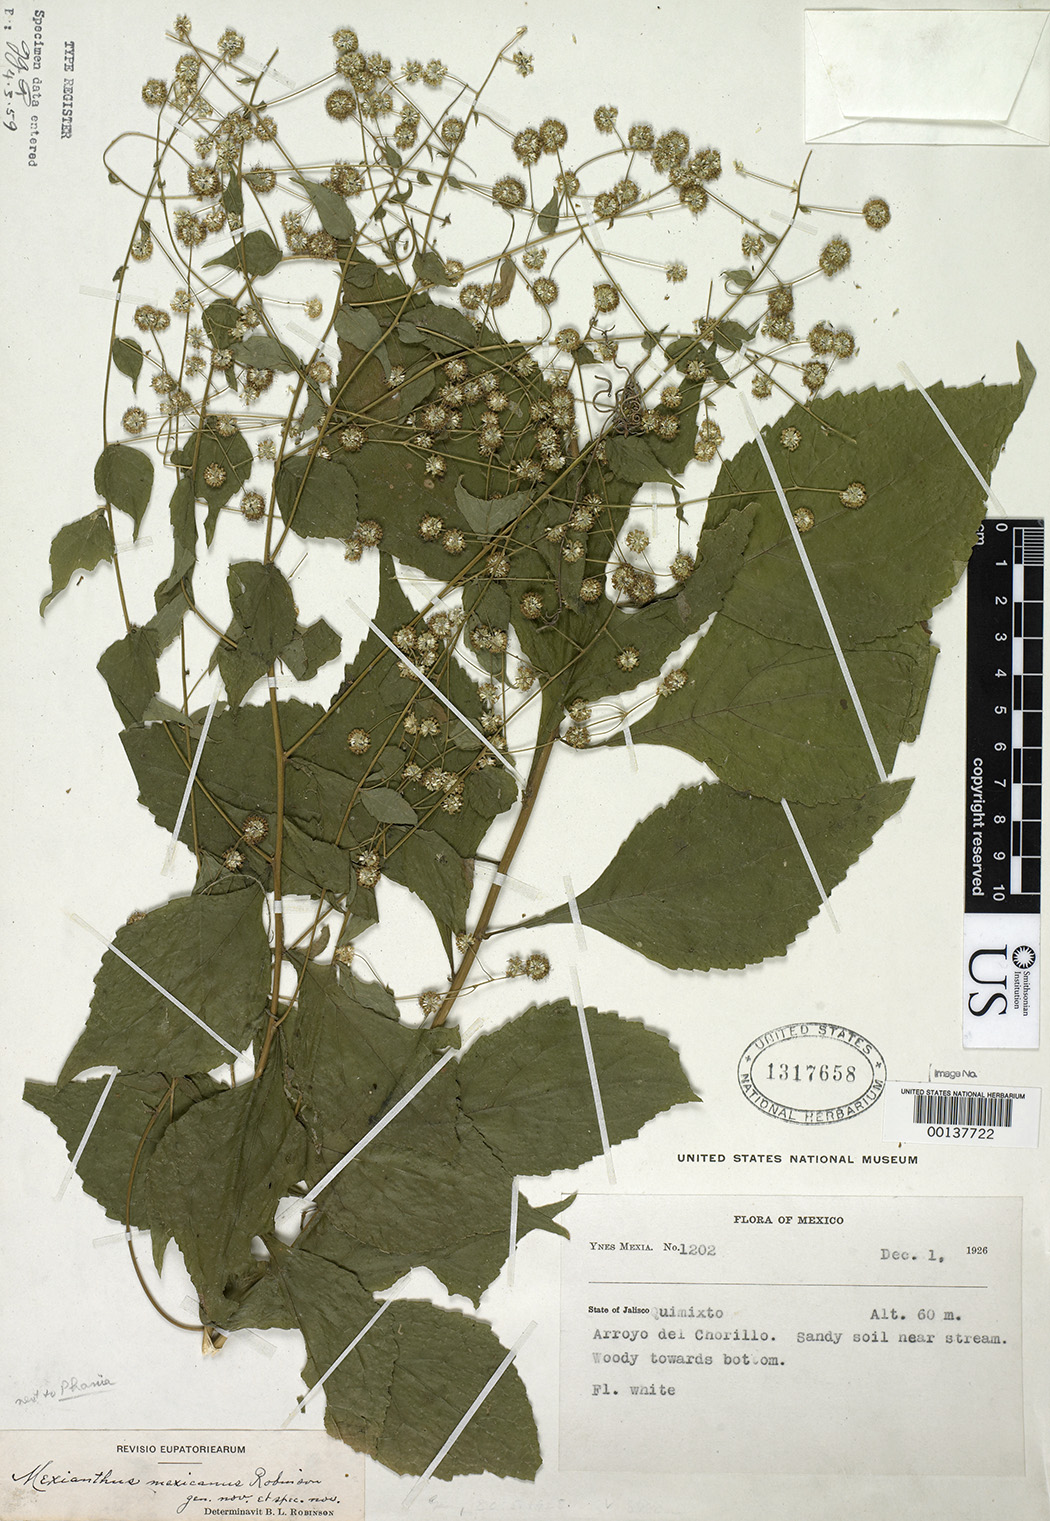 A specimen of Mexianthus mexicanus Robinson collected by Ynes Mexia